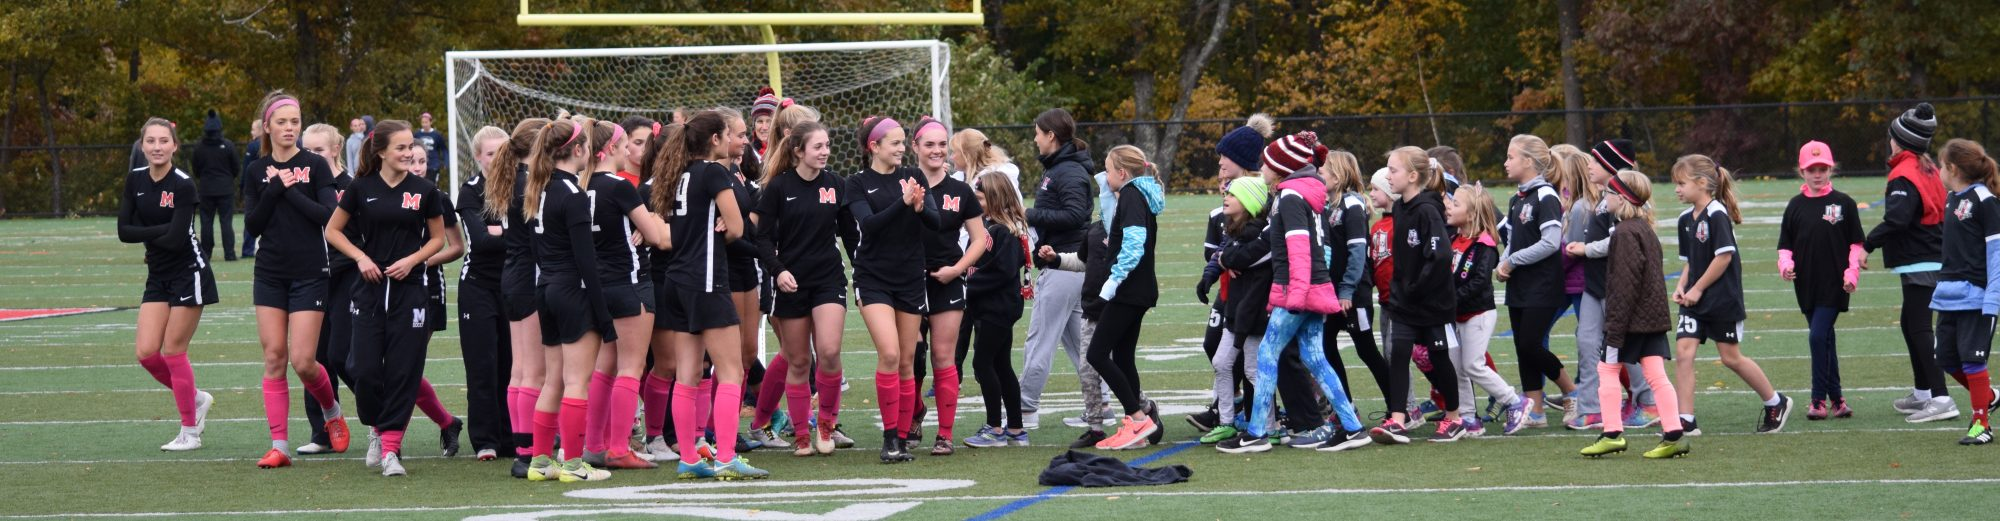 Code of Conduct Policy | Marblehead Youth Soccer Association